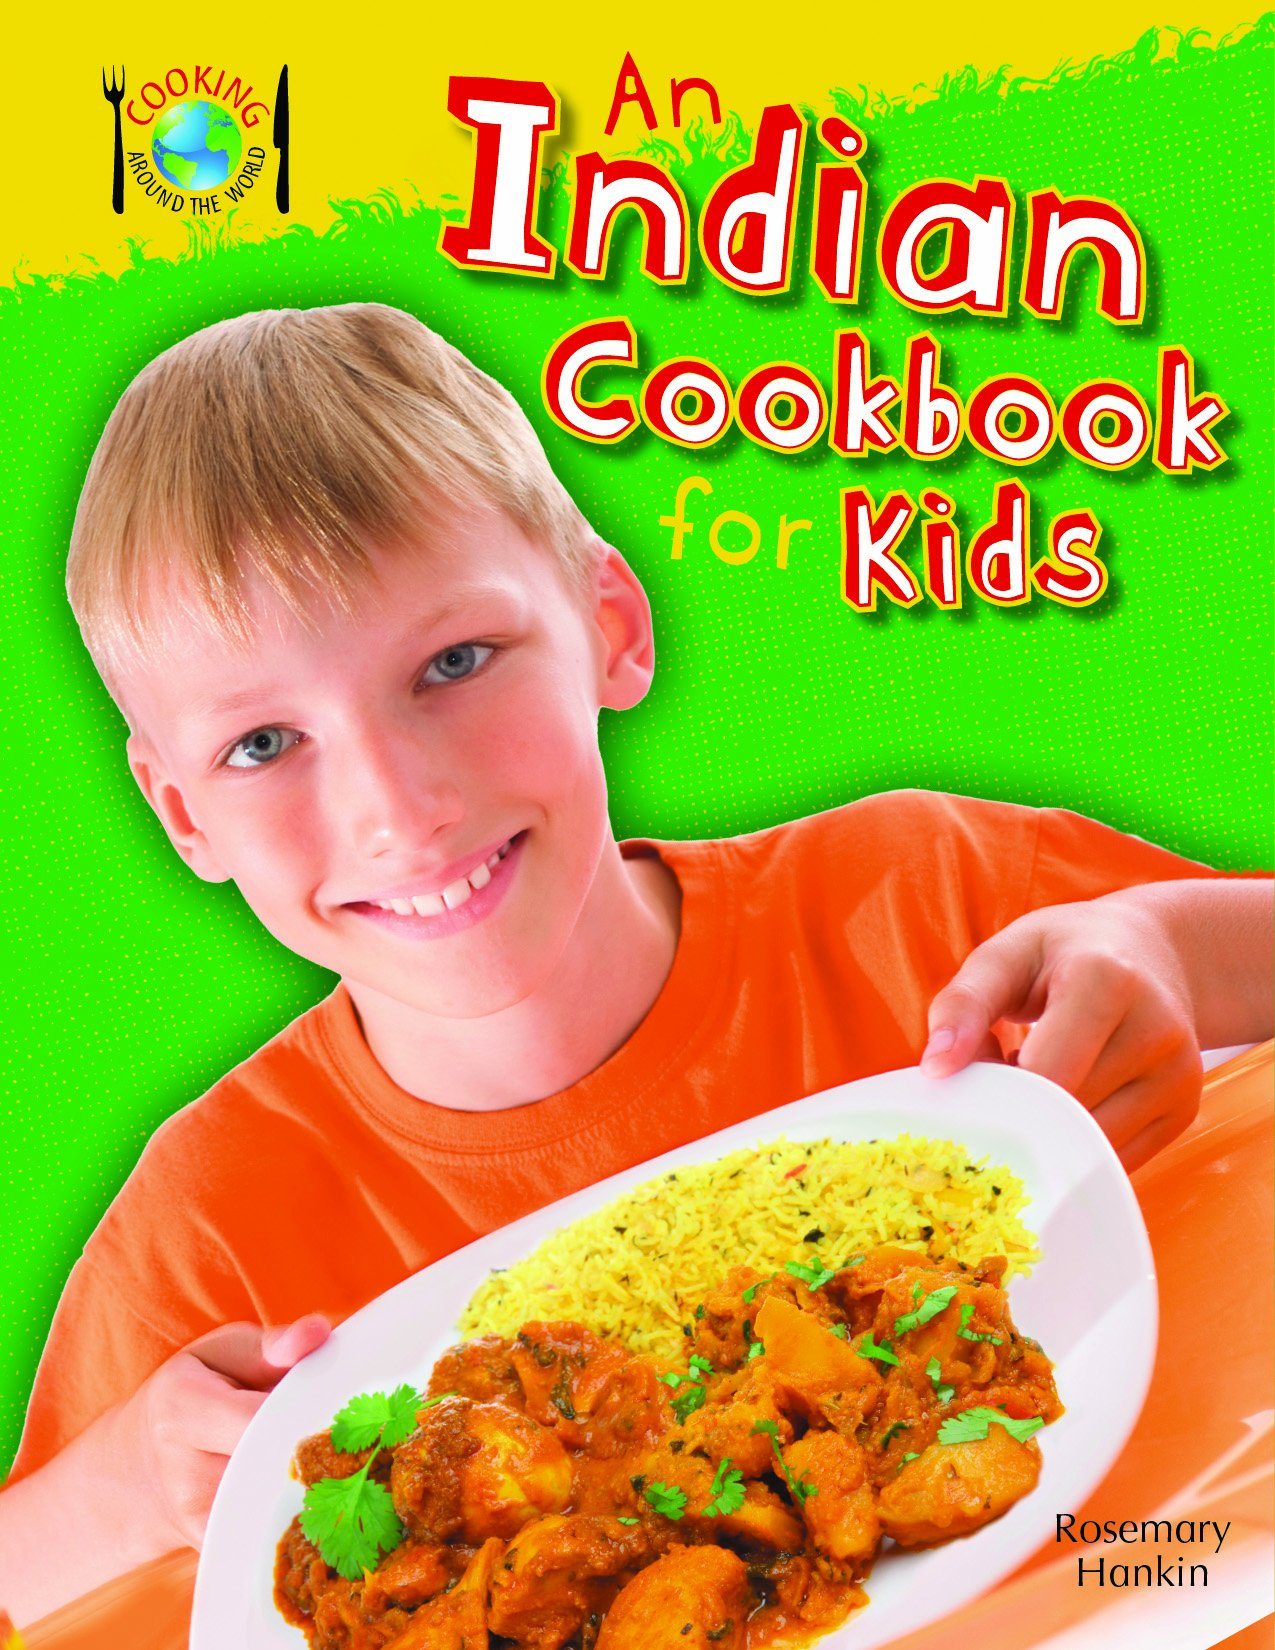 An Indian Cookbook for Kids (Cooking Around the World) by Powerkids Pr (Image #1)